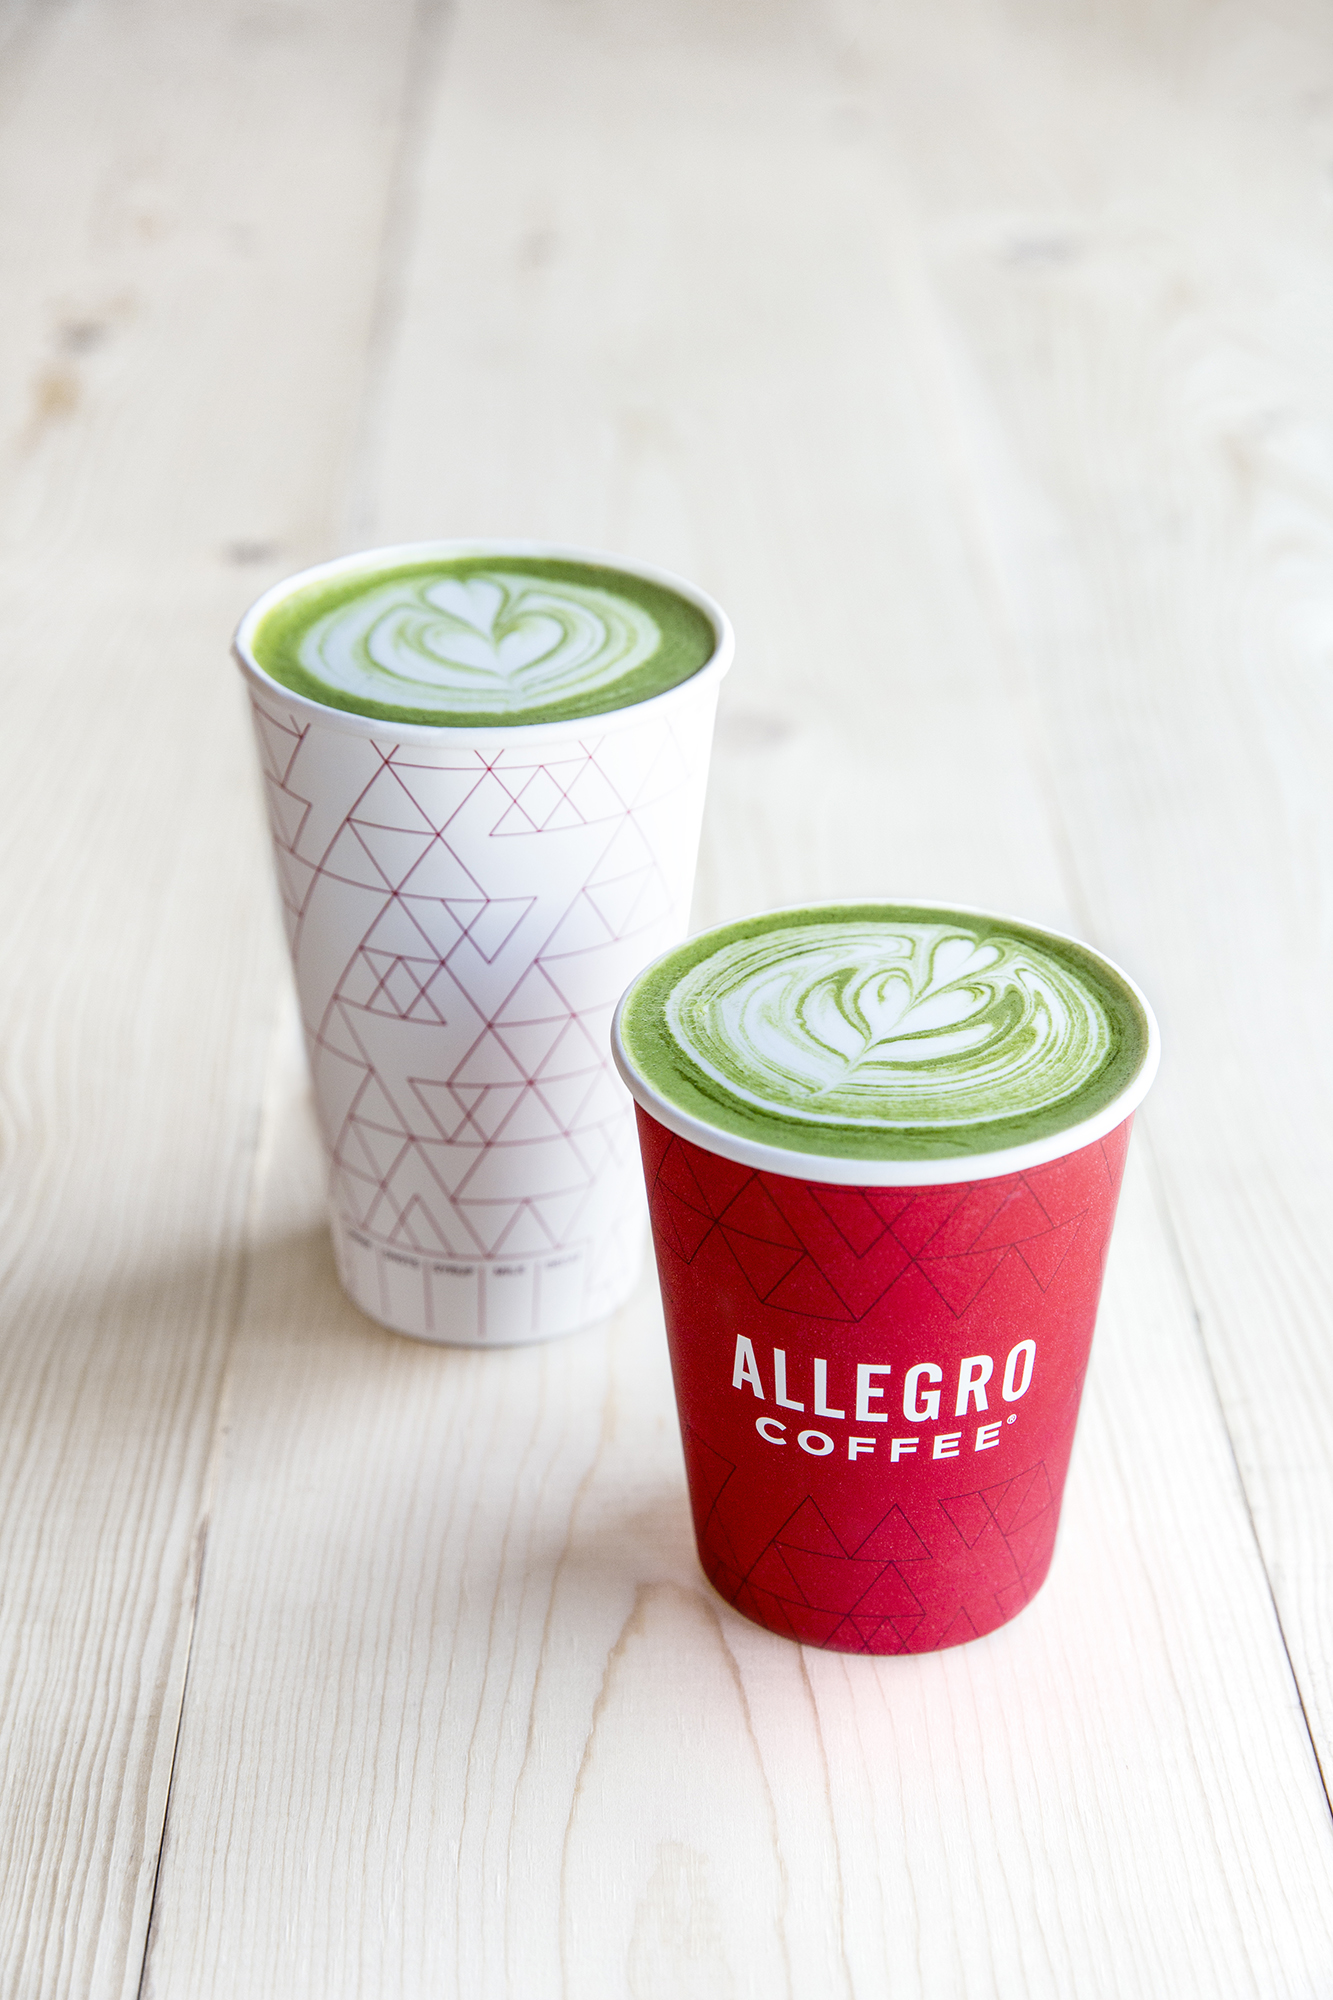 Holiday Allegro Drinks by Rebecca Stumpf Denver Boulder Colorado Lifestyle Food Travel Editorial Commercial Photographer.